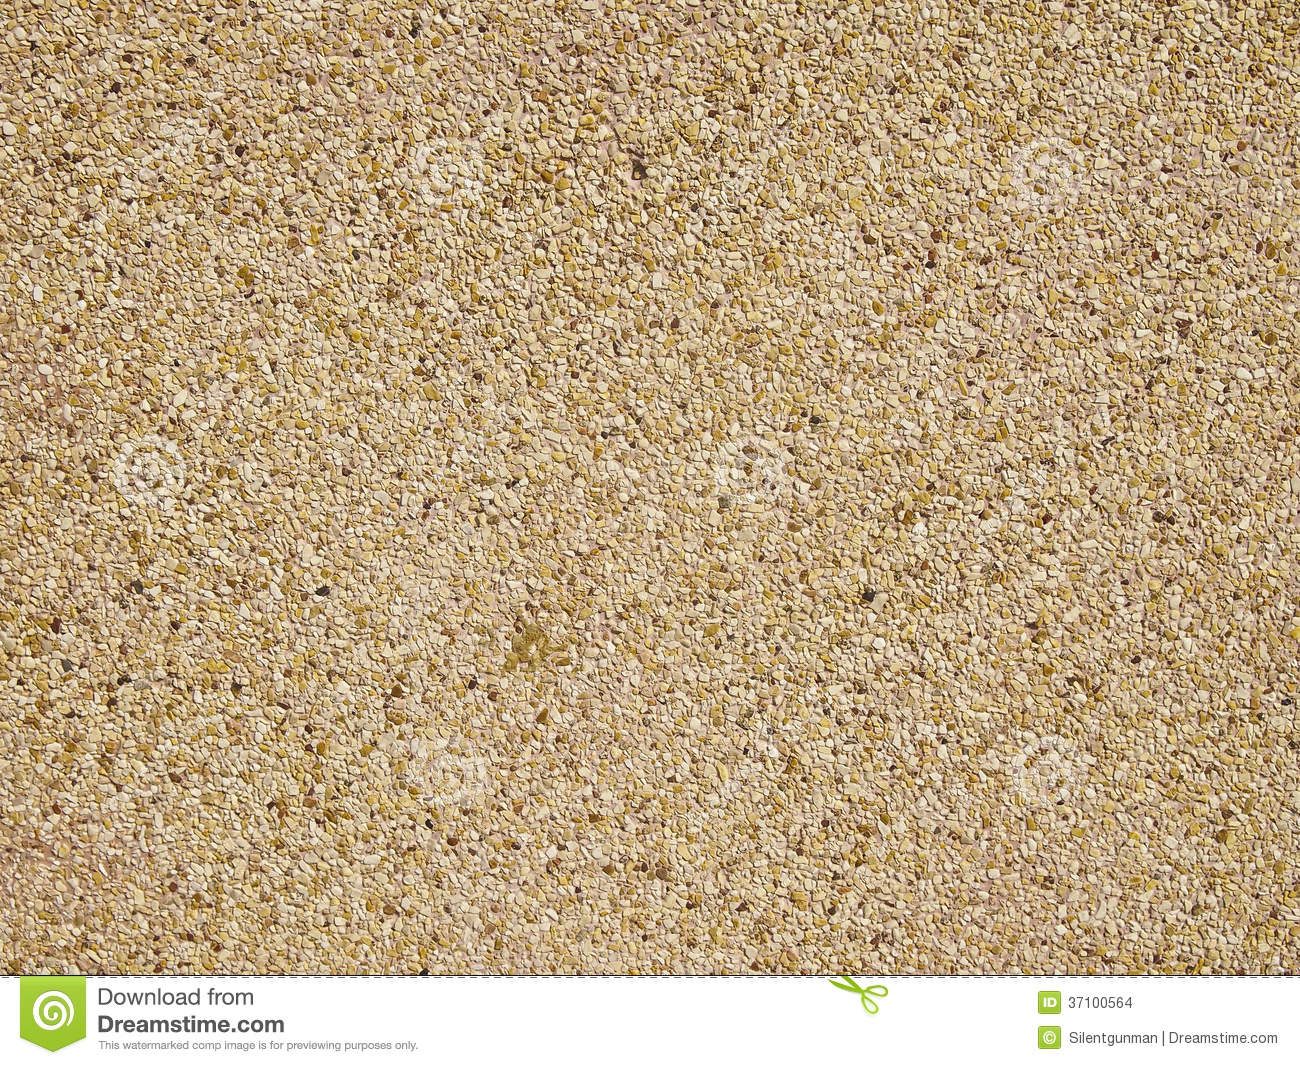 Fine gravel wall stock photo image of texture color for Wall surface texture